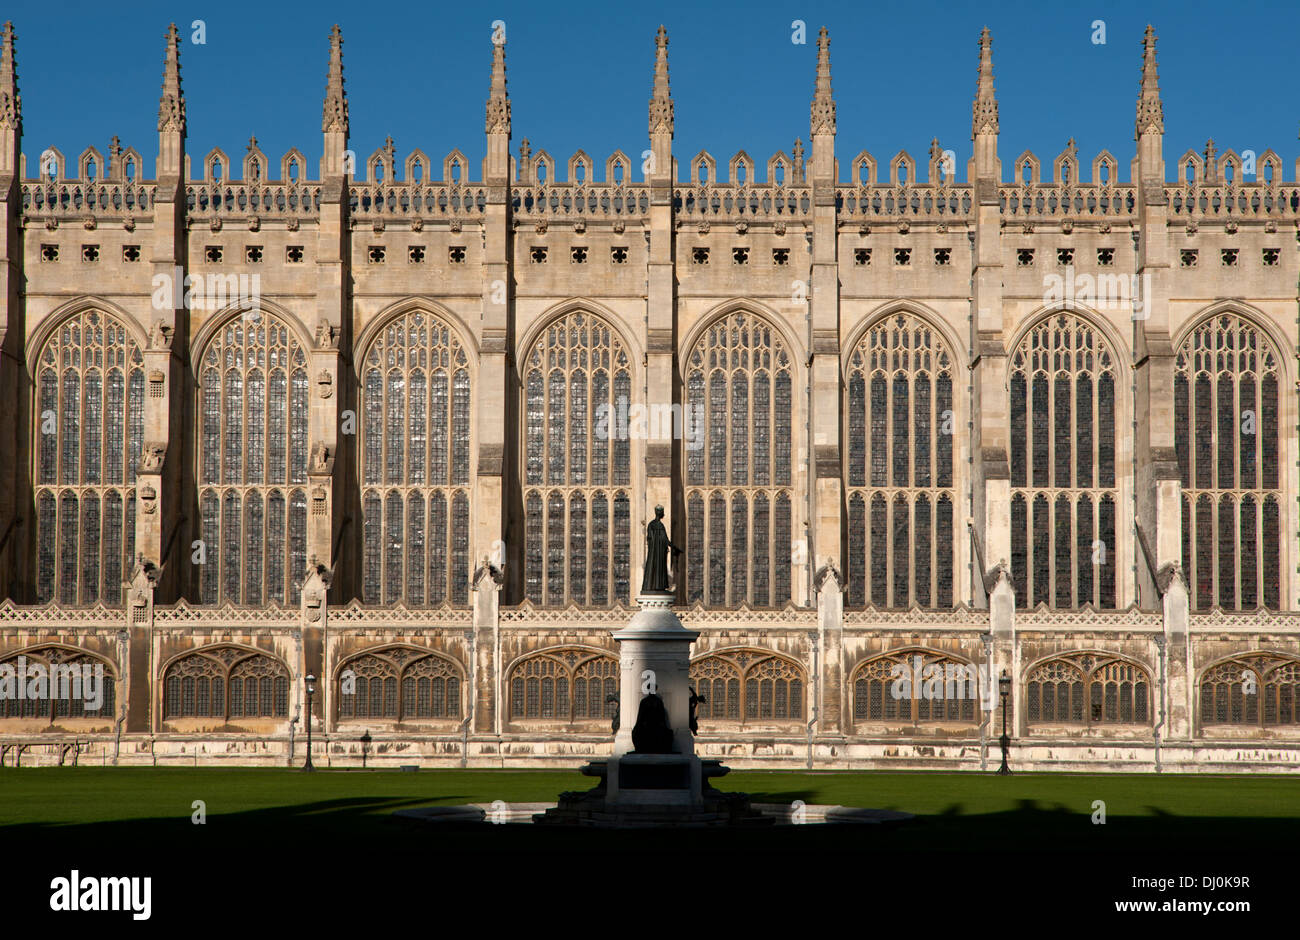 Cambridge, England. Cambridge, England. 15_11_2013 King's College Chapel with statue of founder Henry VI. - Stock Image